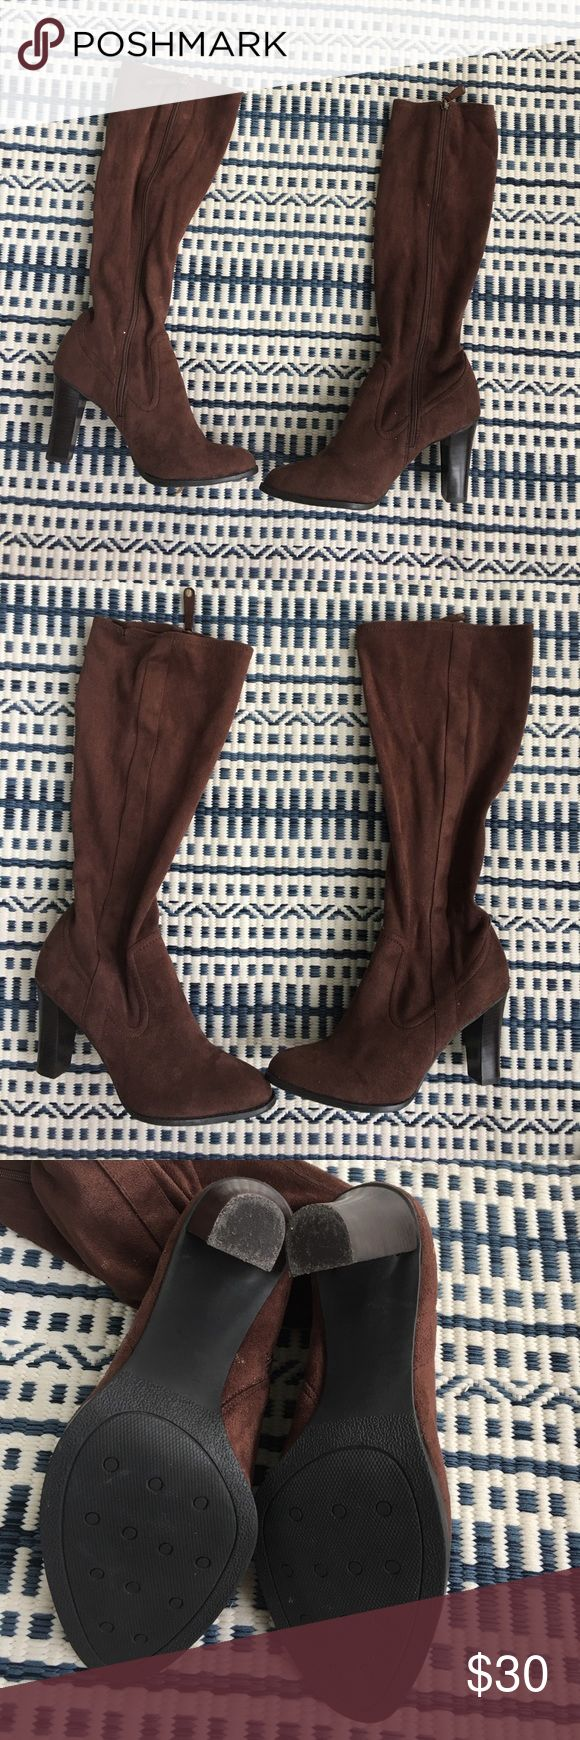 Brown suede knee high boots Brown suede knee-high boots with a heel. Stretchy material encompassing the calf. Soles in like-new condition. worn once Isaac Mizrahi Shoes Heeled Boots